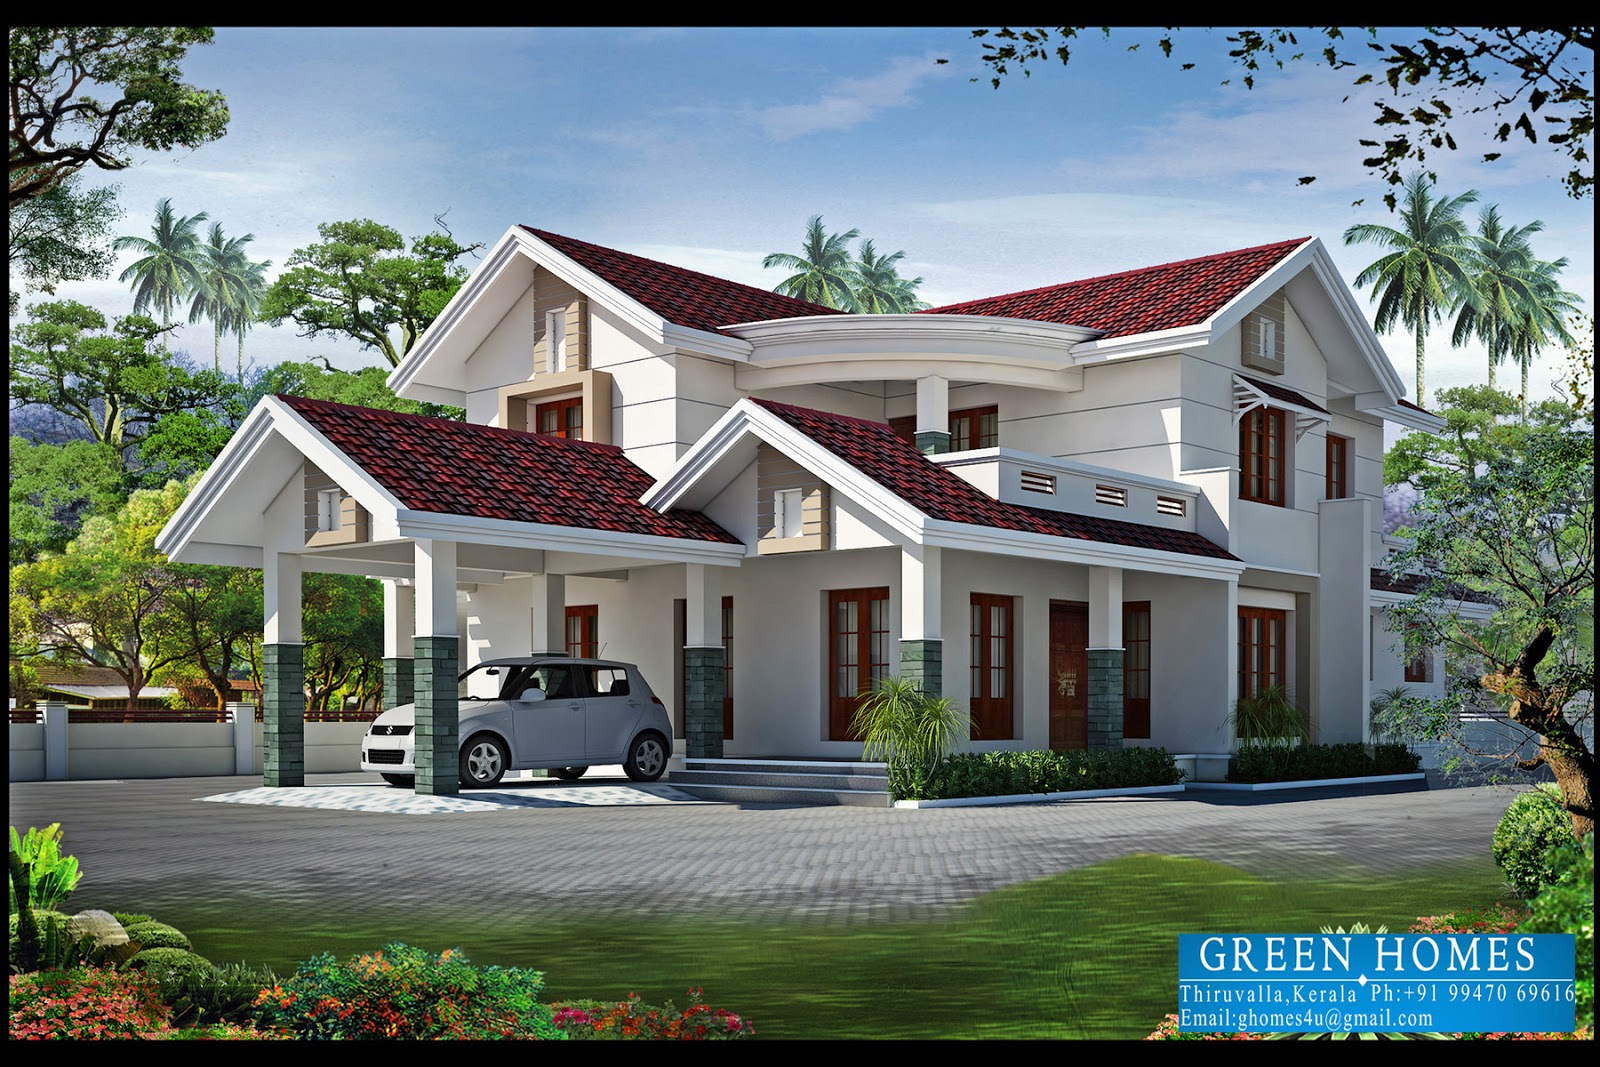 Green homes 4bhk kerala home design 2550 for Beautiful model house